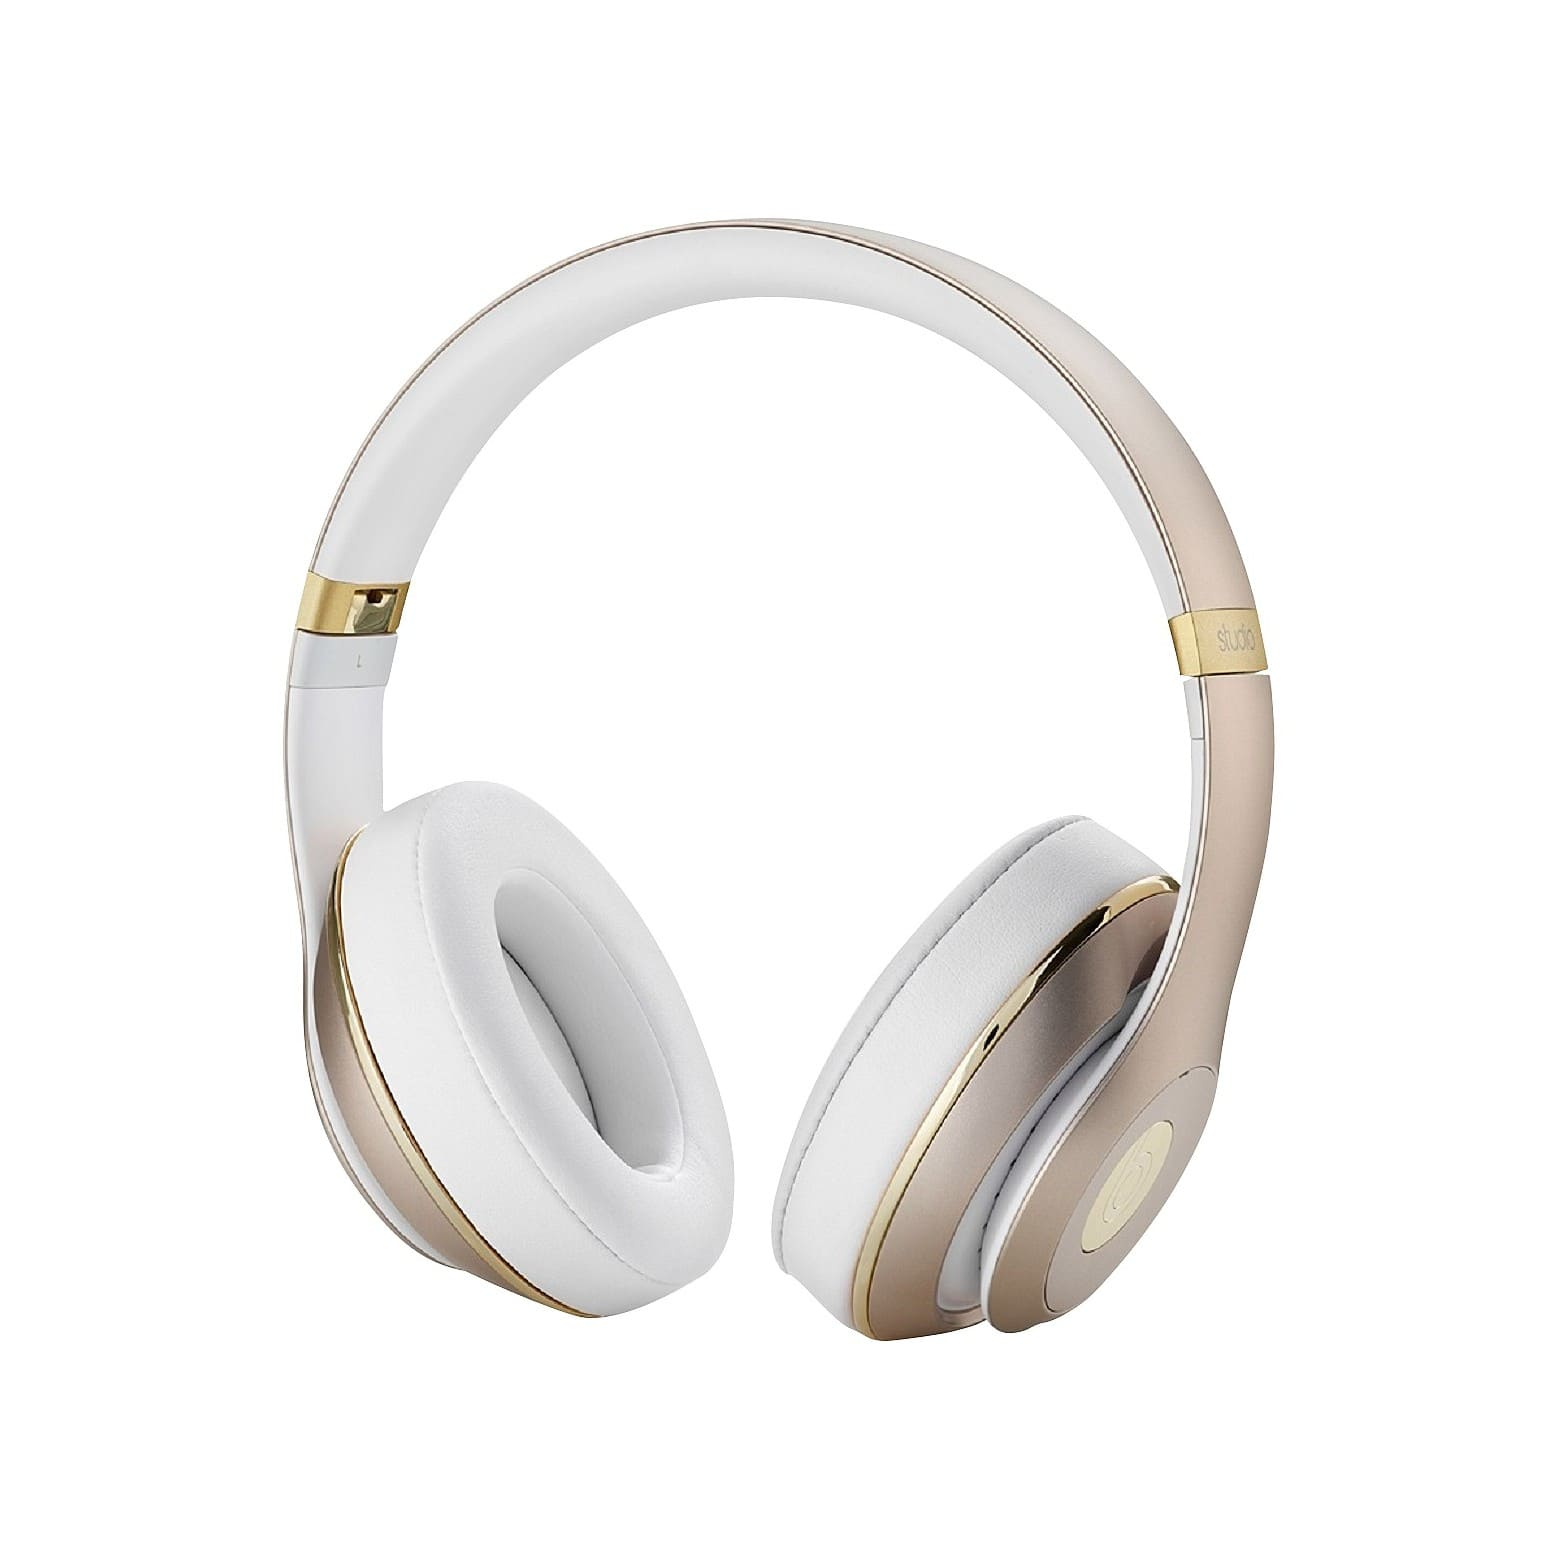 Beats Studio Wireless at Target for $159.99 or less